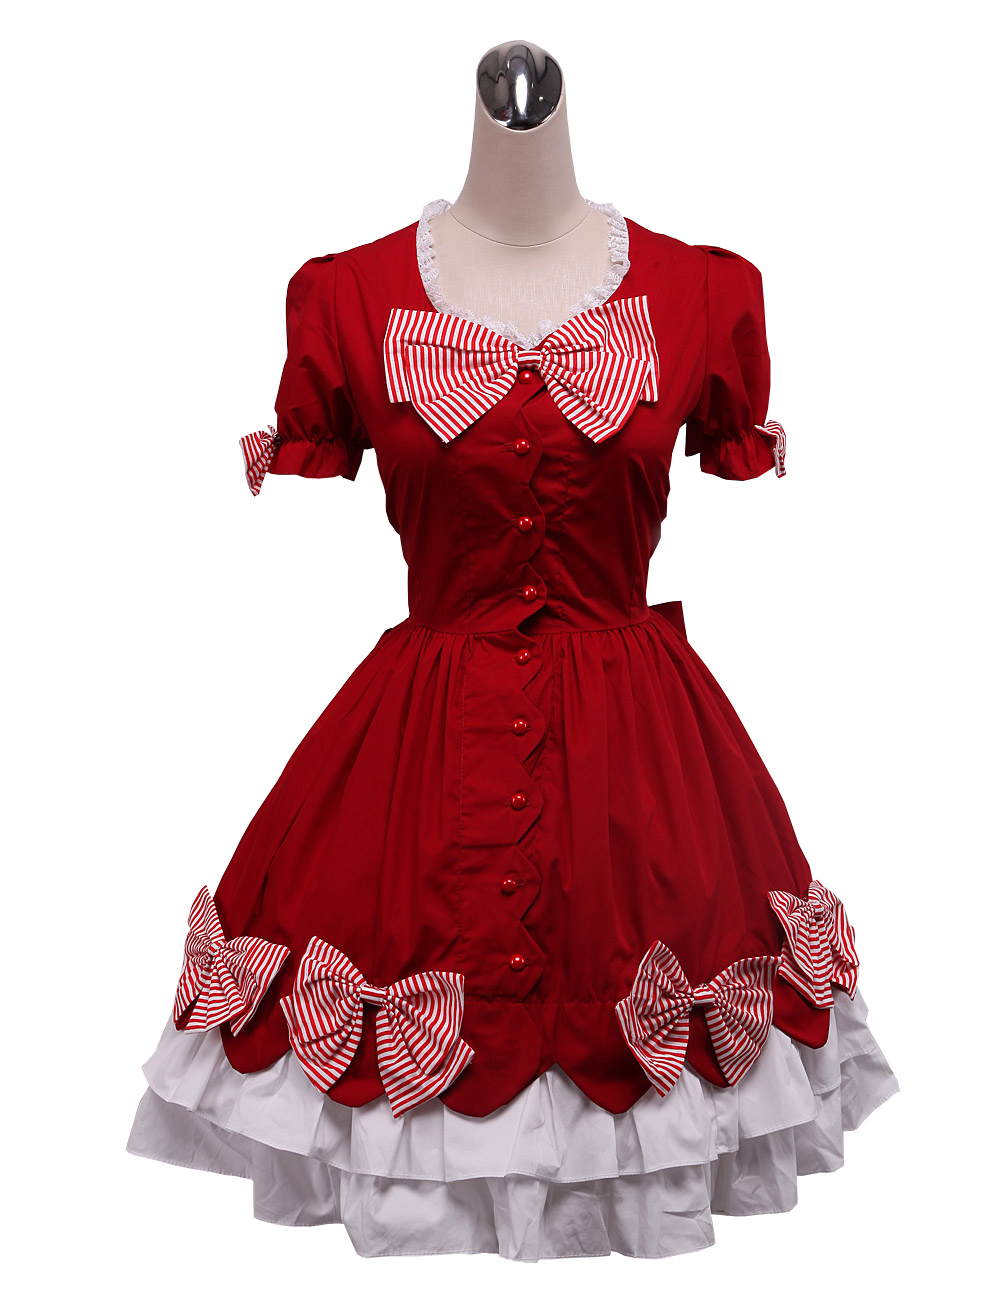 Primary image for ZeroMart Red Cotton Bow Buttons Ruffles Vintage Gothic Victorian Lolita Dress